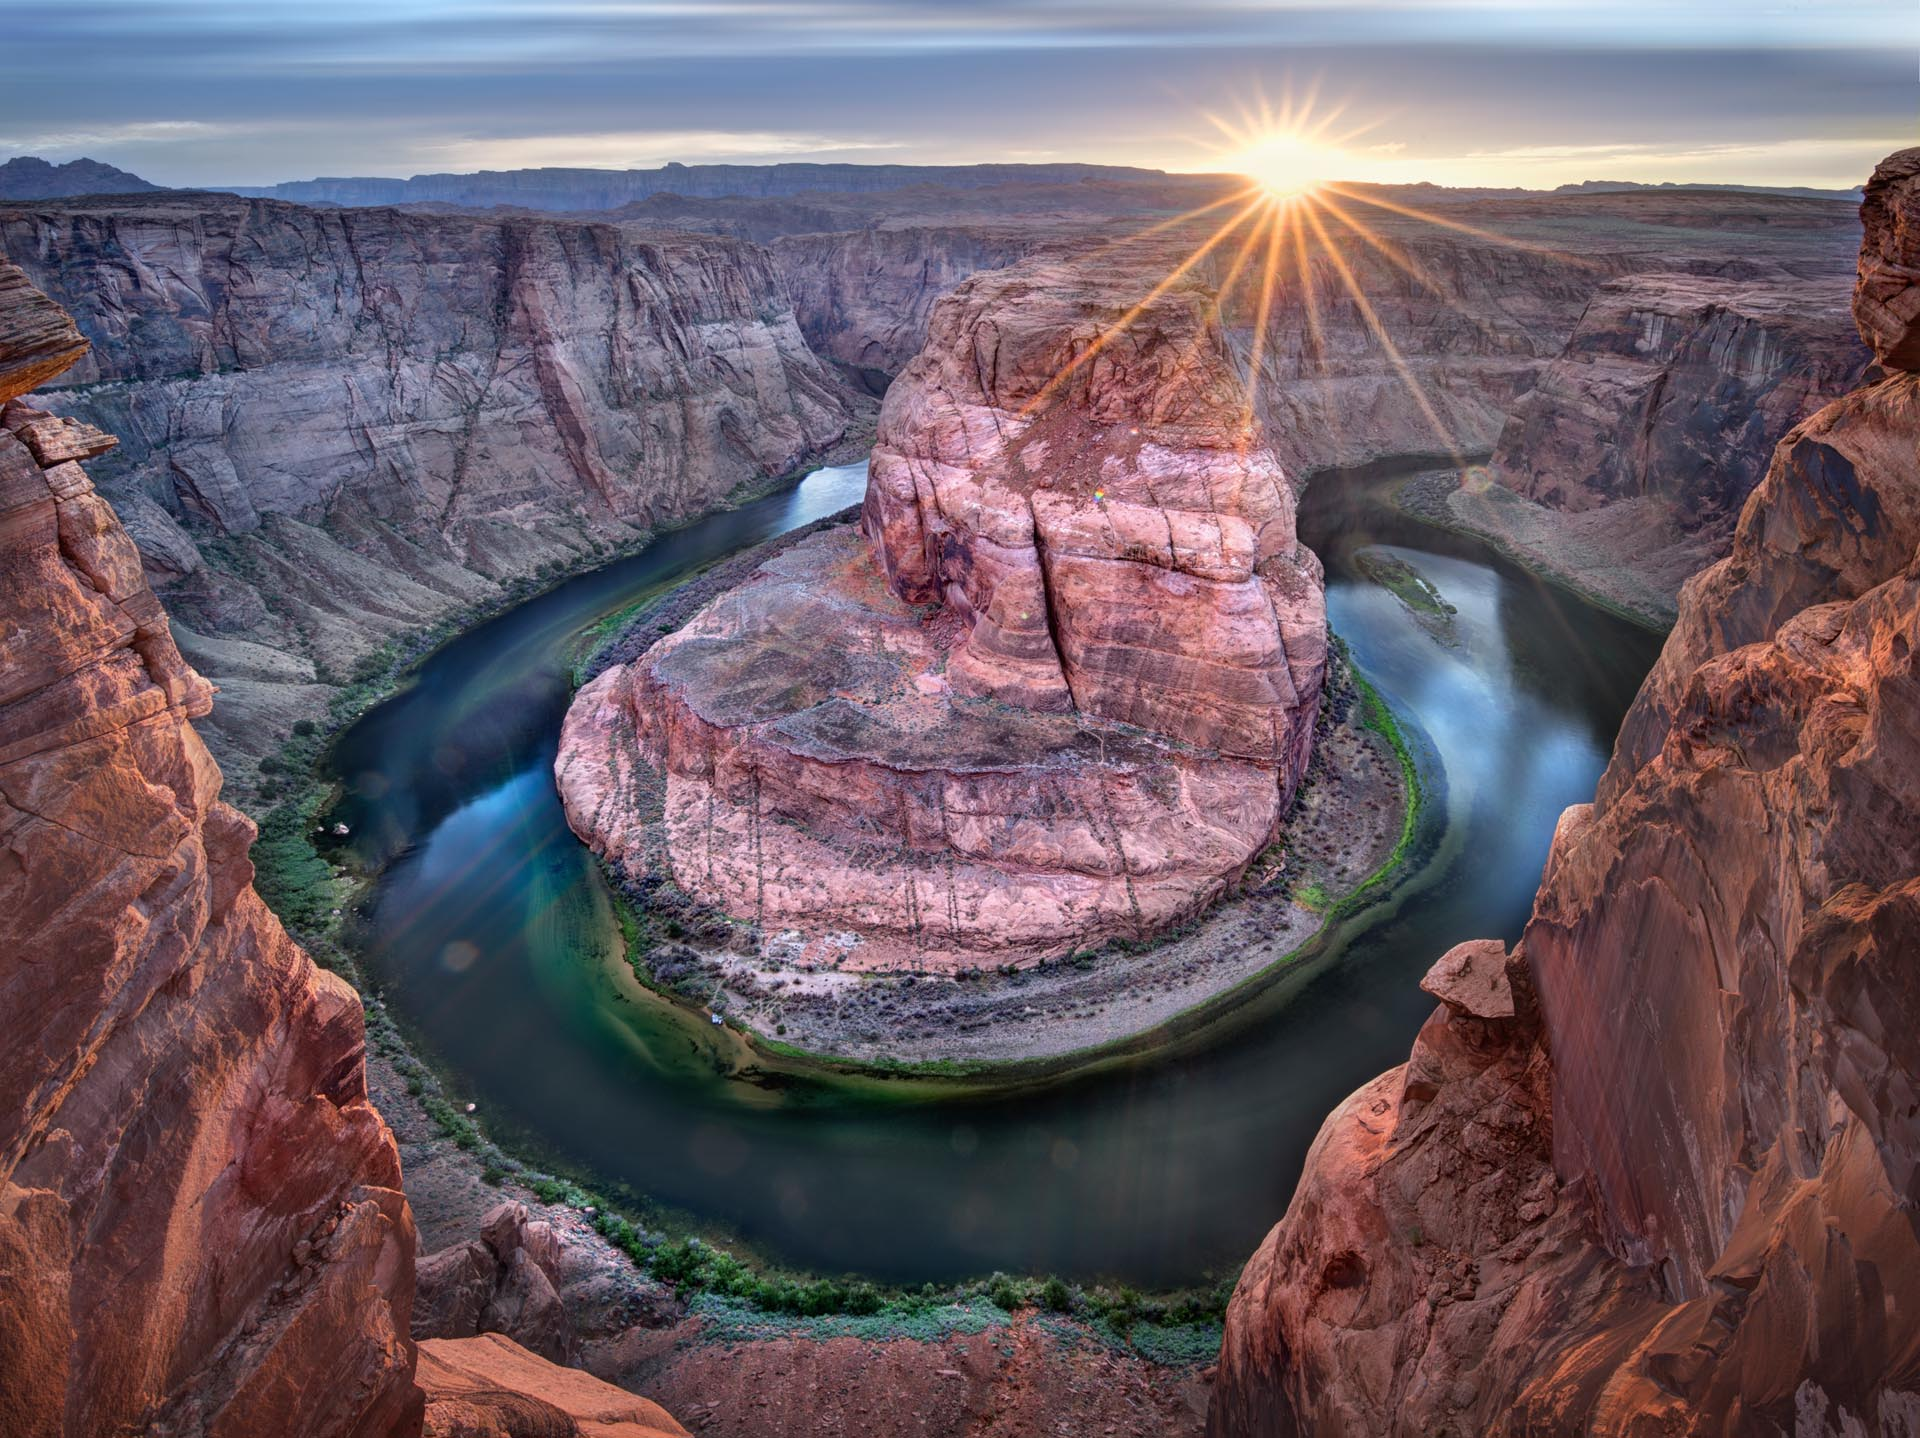 The Horseshoe Bend in the Colorado River, at Page, Arizona